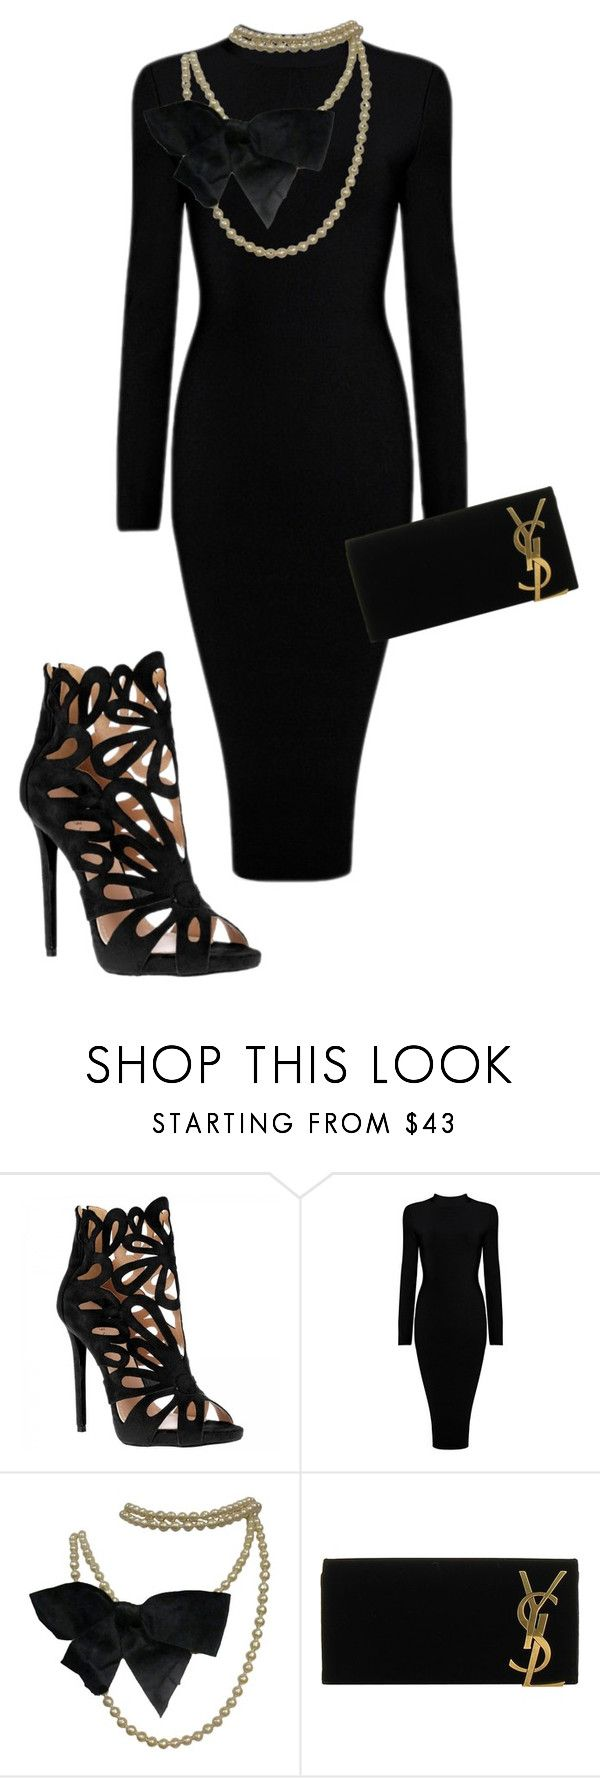 """Black."" by doo-x ❤ liked on Polyvore featuring Chanel and Yves Saint Laurent"